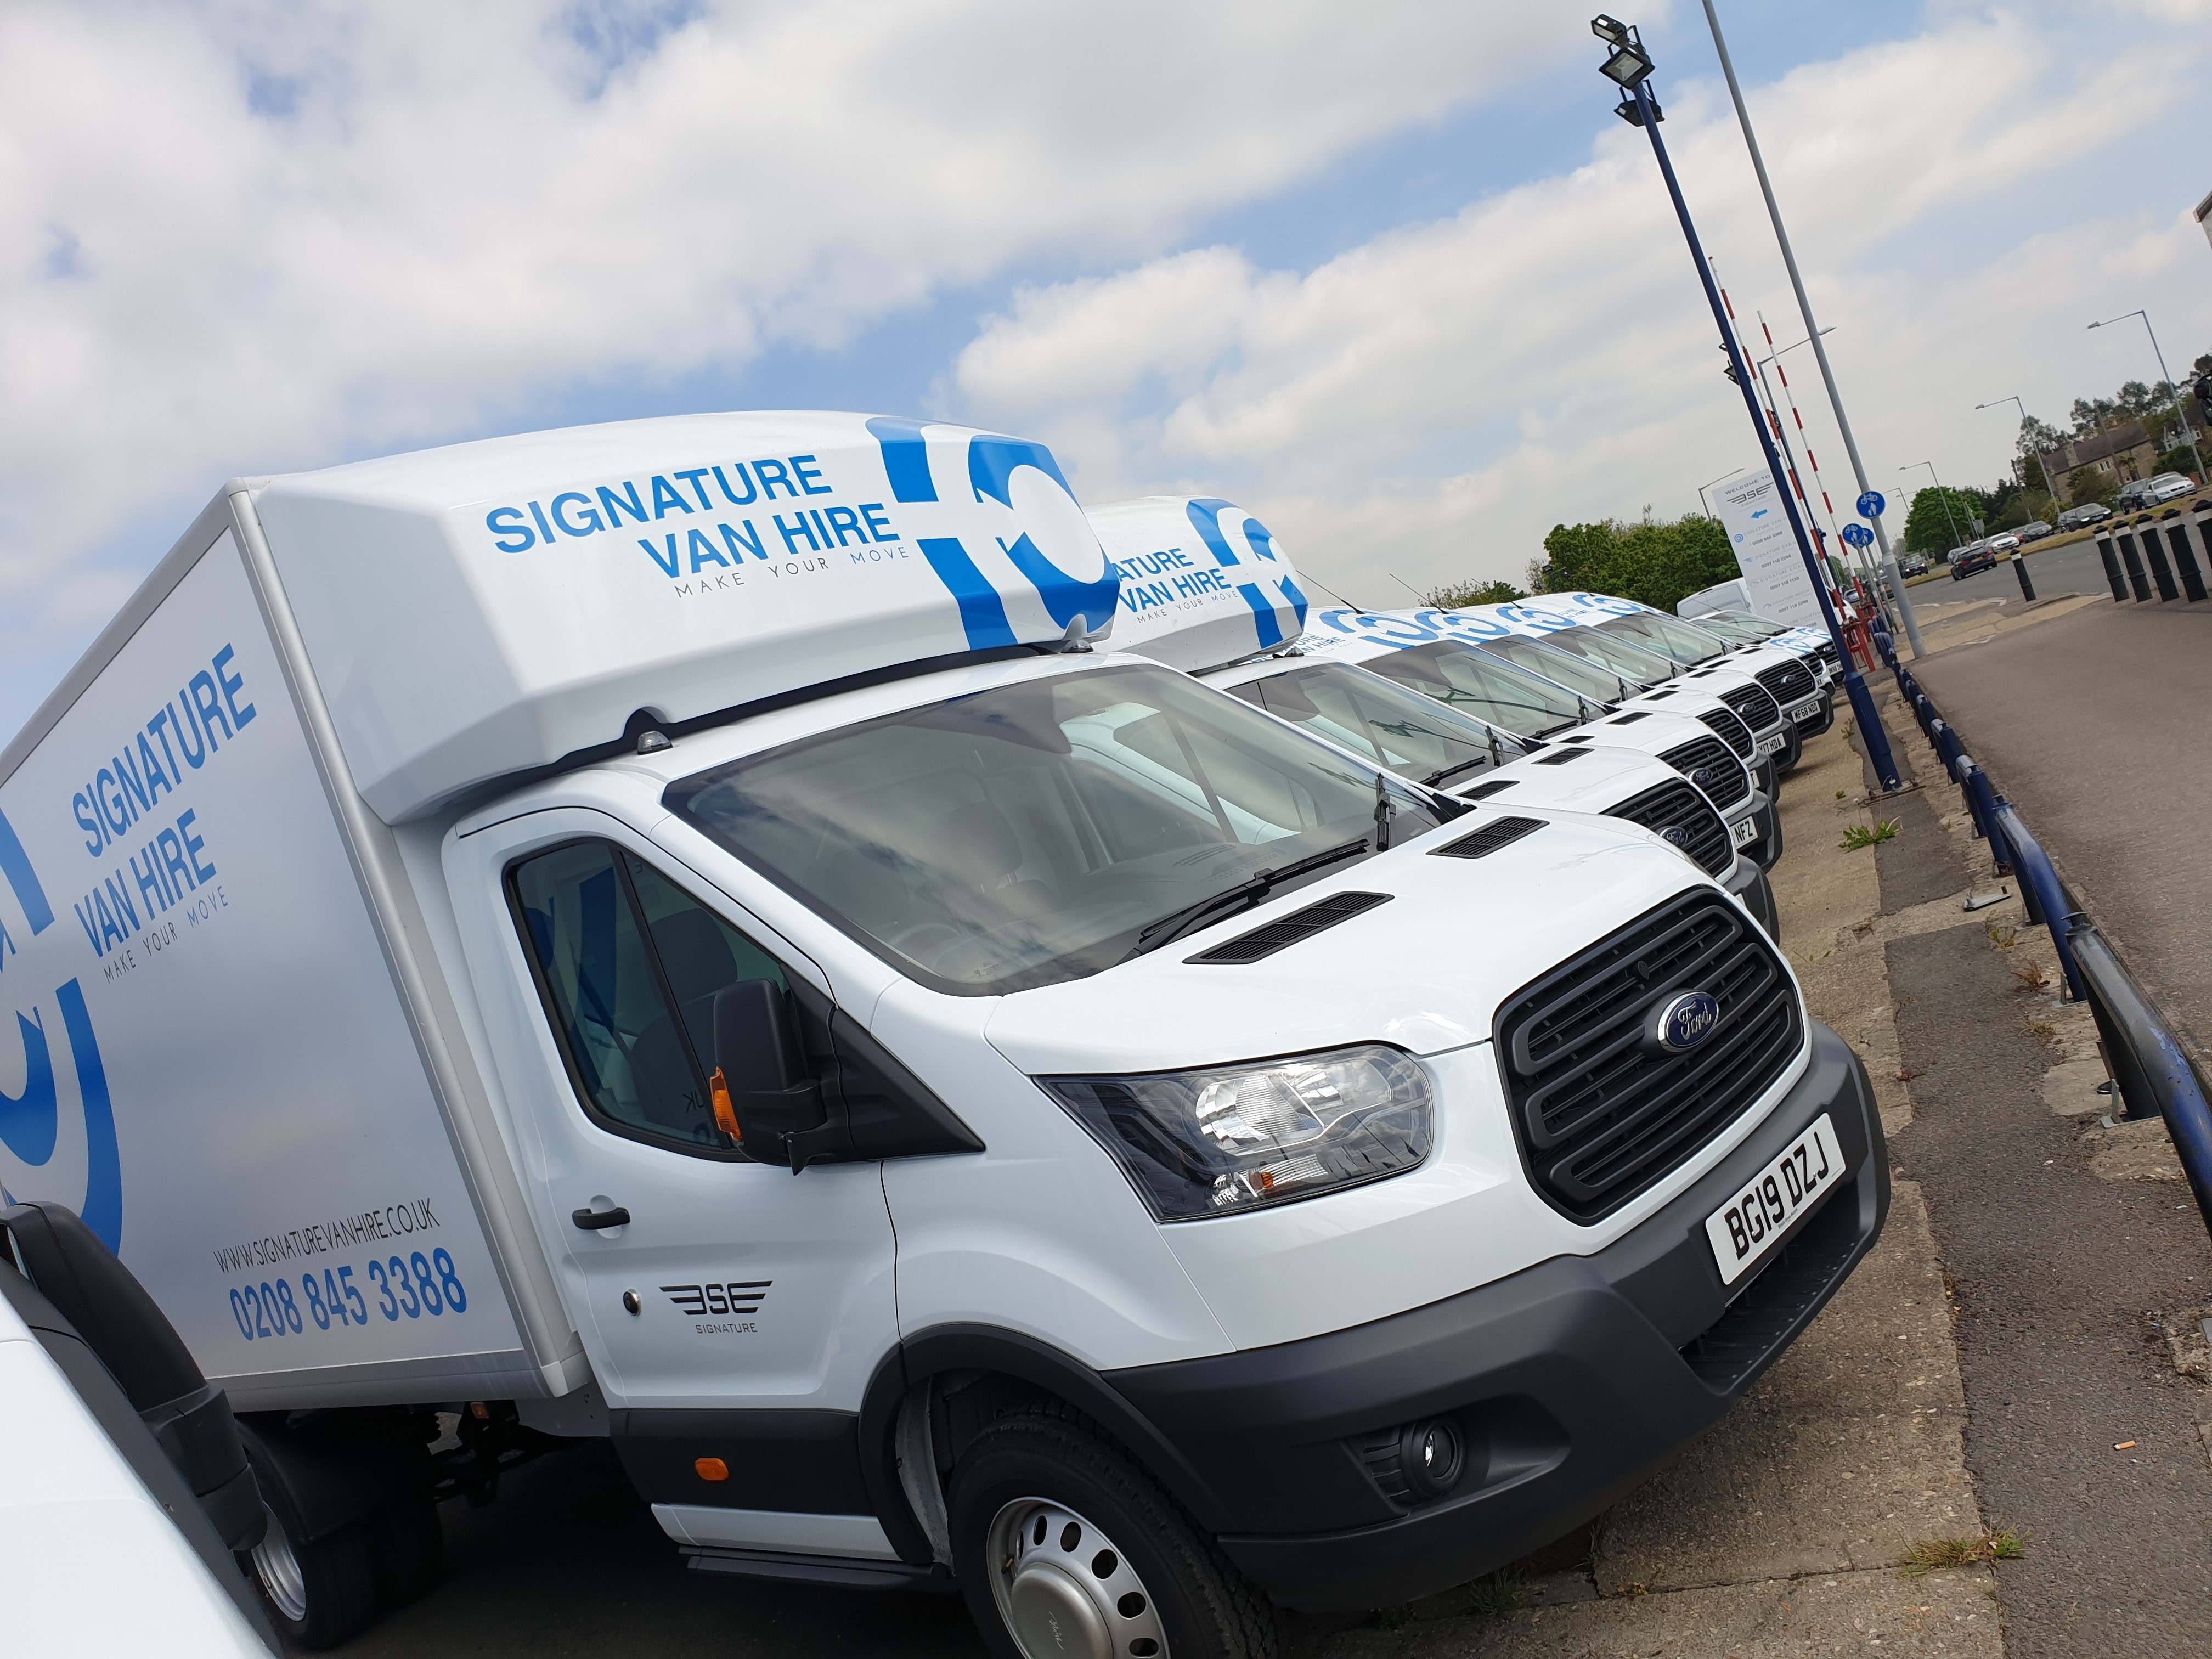 Our 19 Plate Rental Vans get new Livery